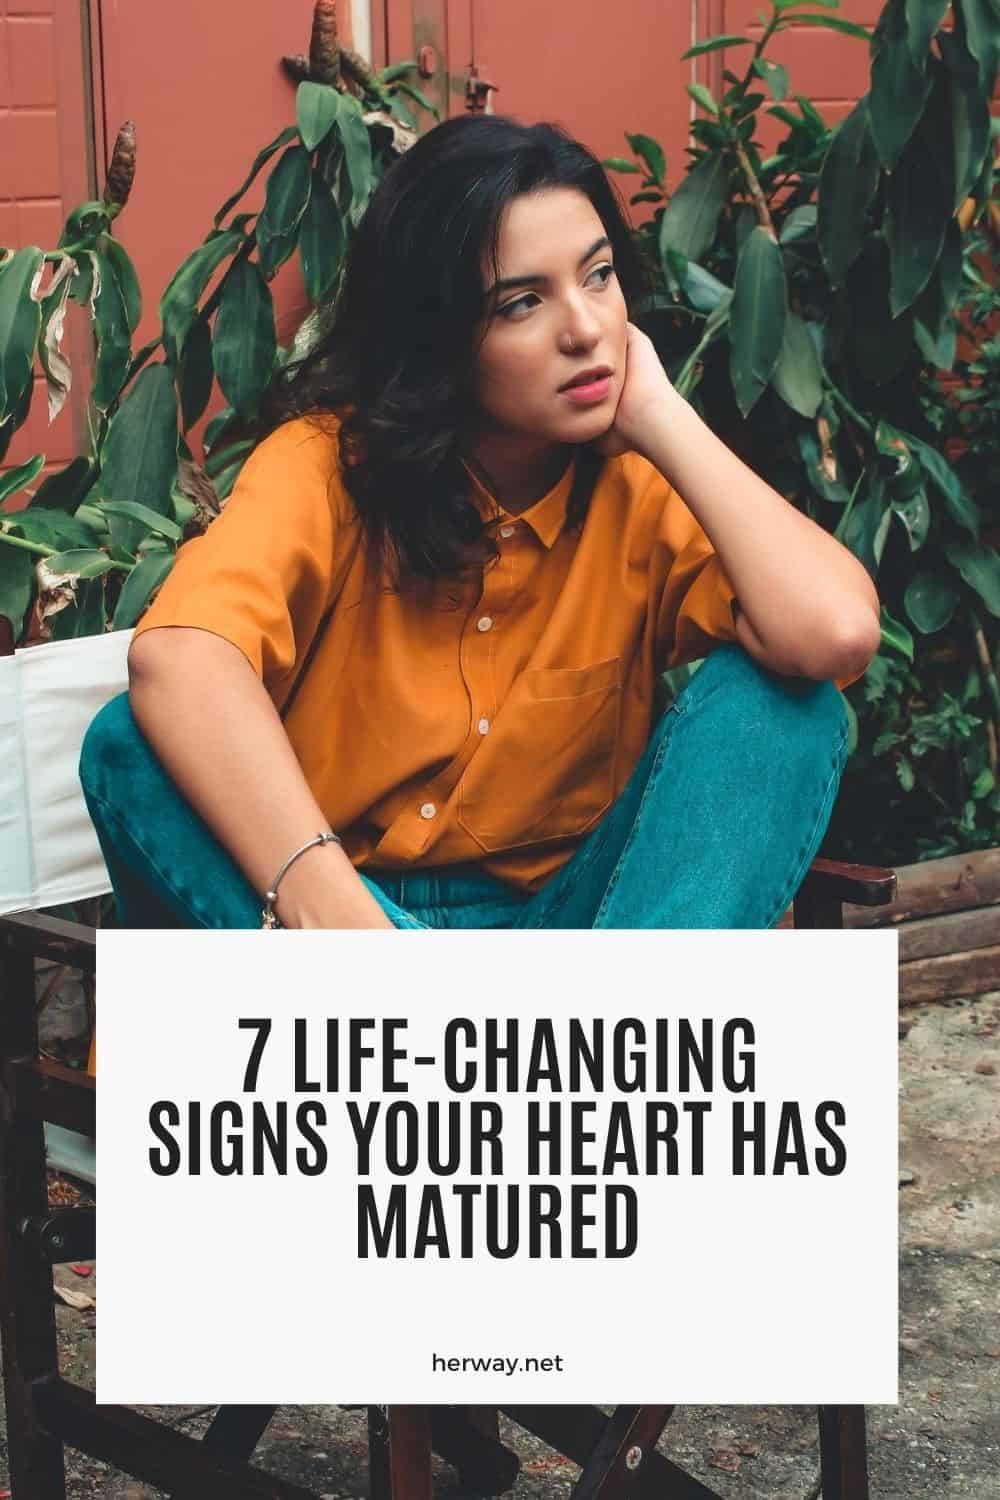 7 Life-Changing Signs Your Heart Has Matured